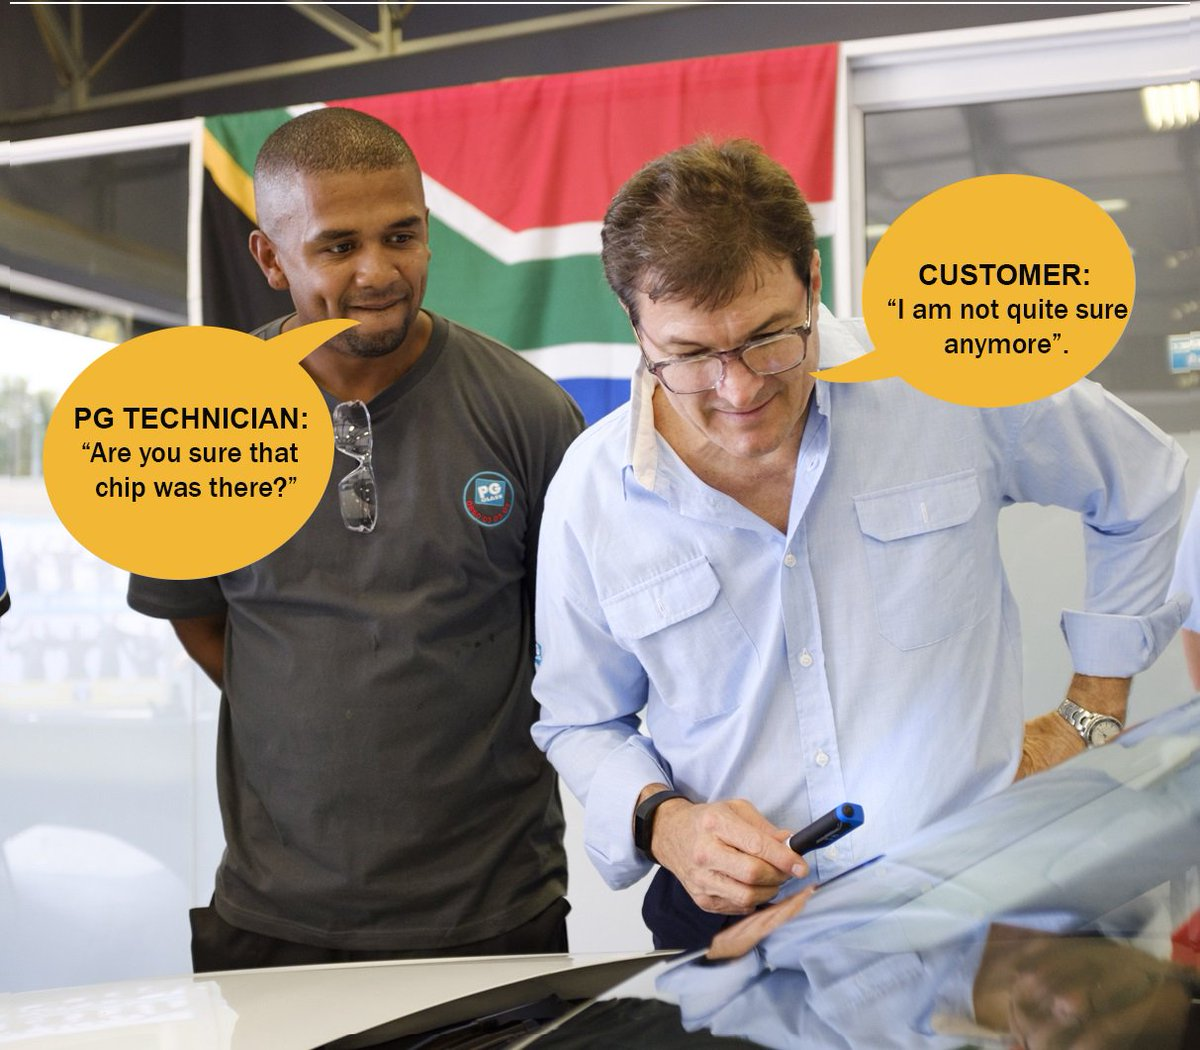 With our EXCLUSIVE PG Glass Medic® Chip Repair technology that chip on your windscreen will be virtually invisible*. So Call us Now on 0860 04 04 04 or visit our website on http://www.pgglass.co.za today!                                            *T's & C's apply.